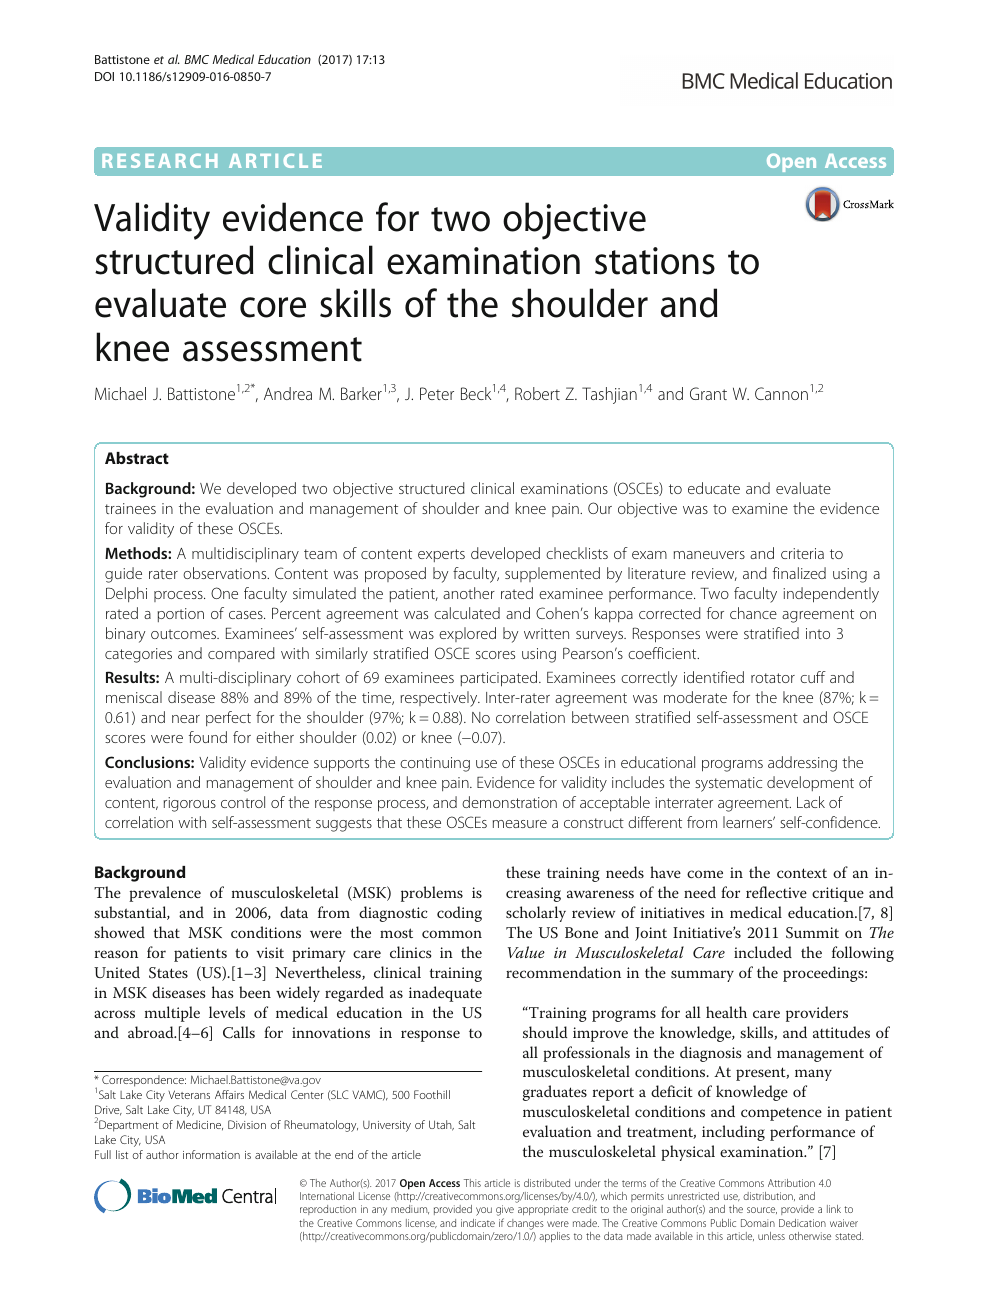 Validity evidence for two objective structured clinical